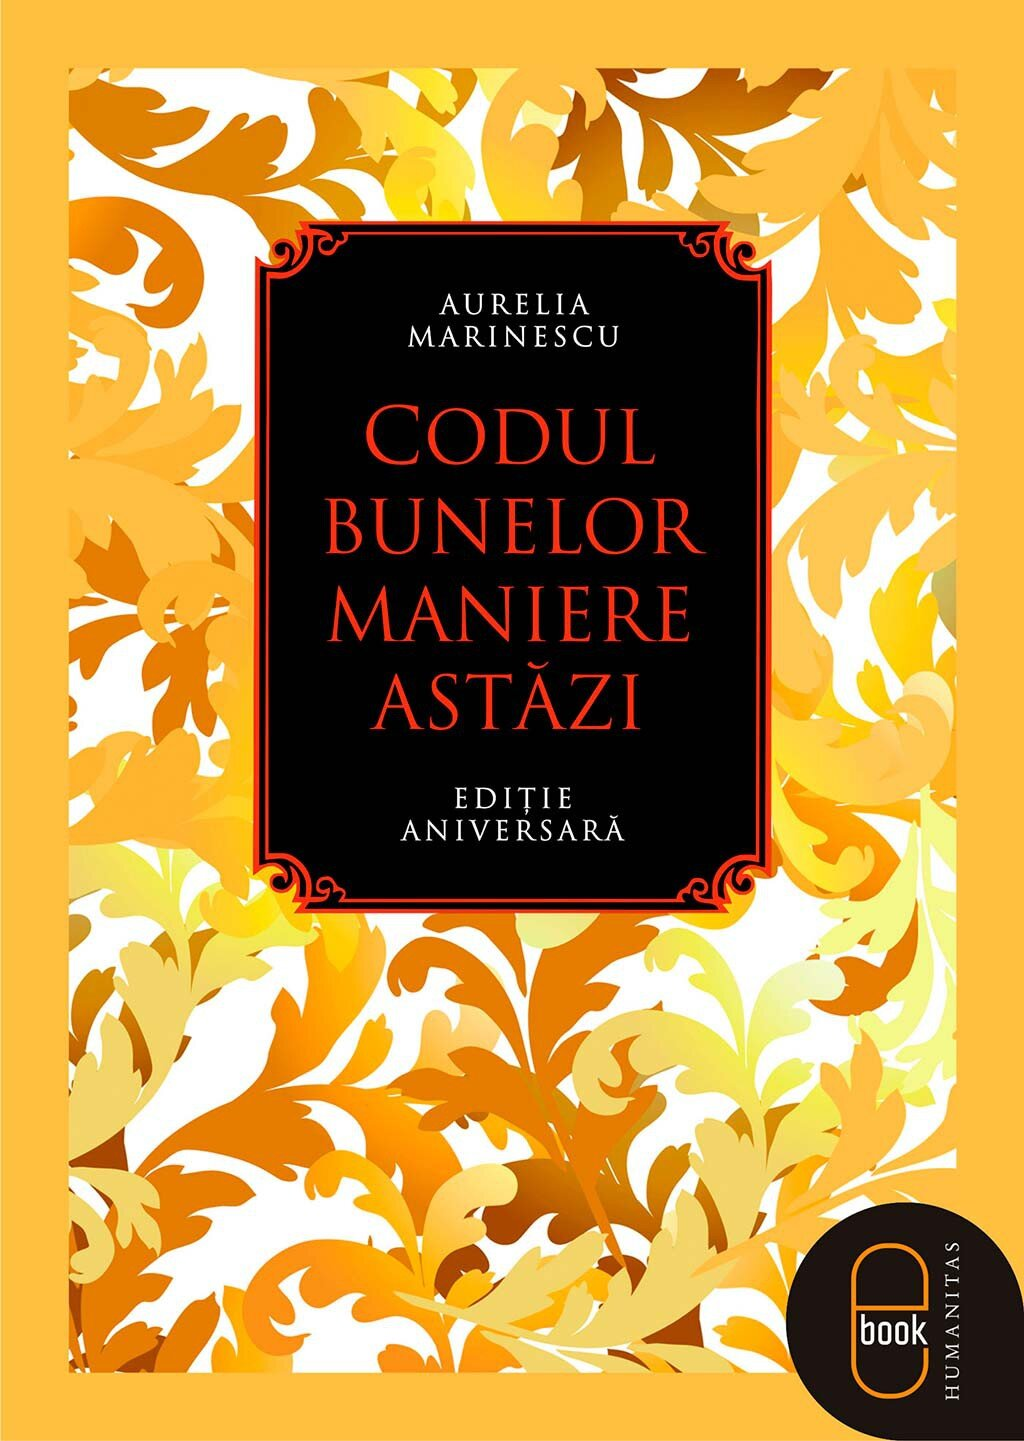 Codul bunelor maniere astazi PDF (Download eBook)